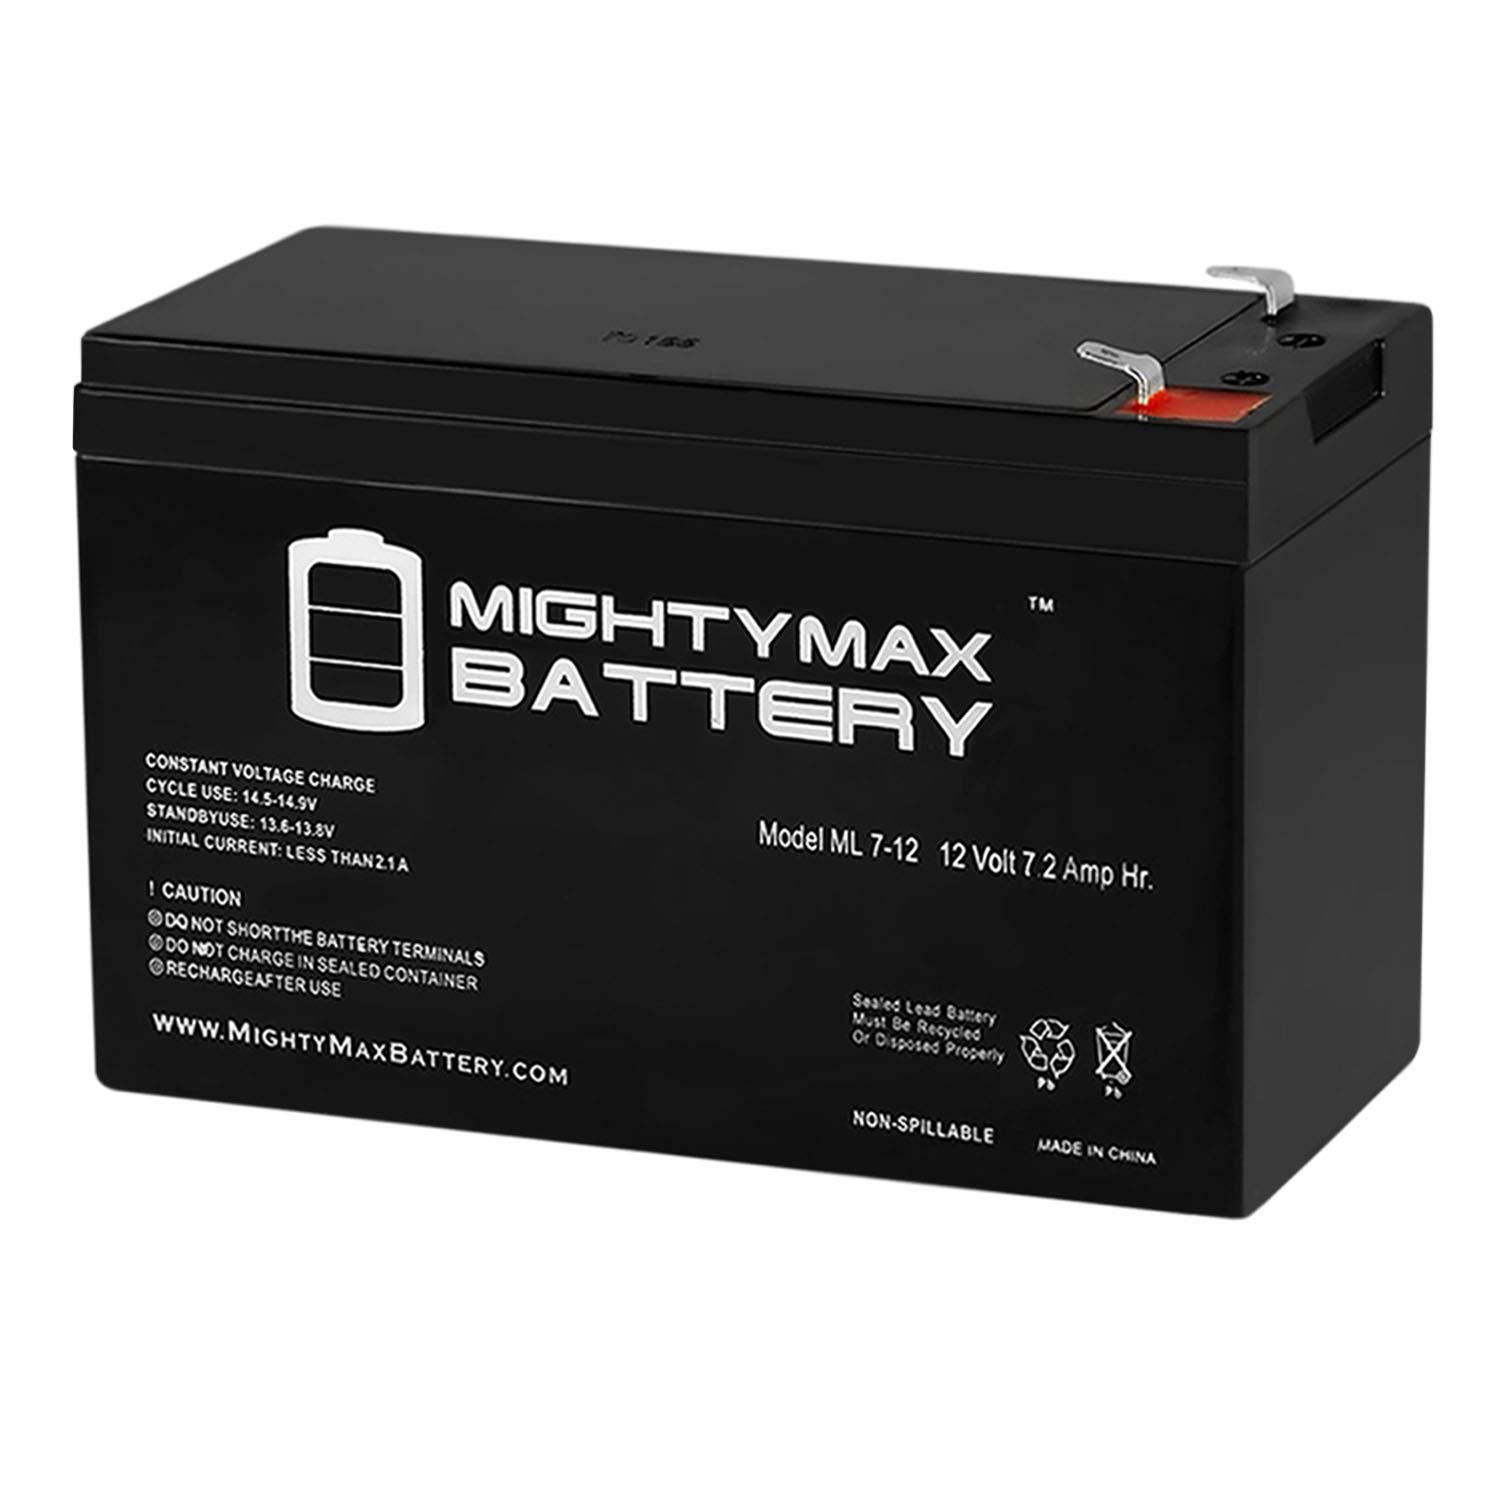 Mighty Max Battery 12V 7.2AH SLA Battery for Verizon FiOS PX12072-HG Brand Product by Mighty Max Battery